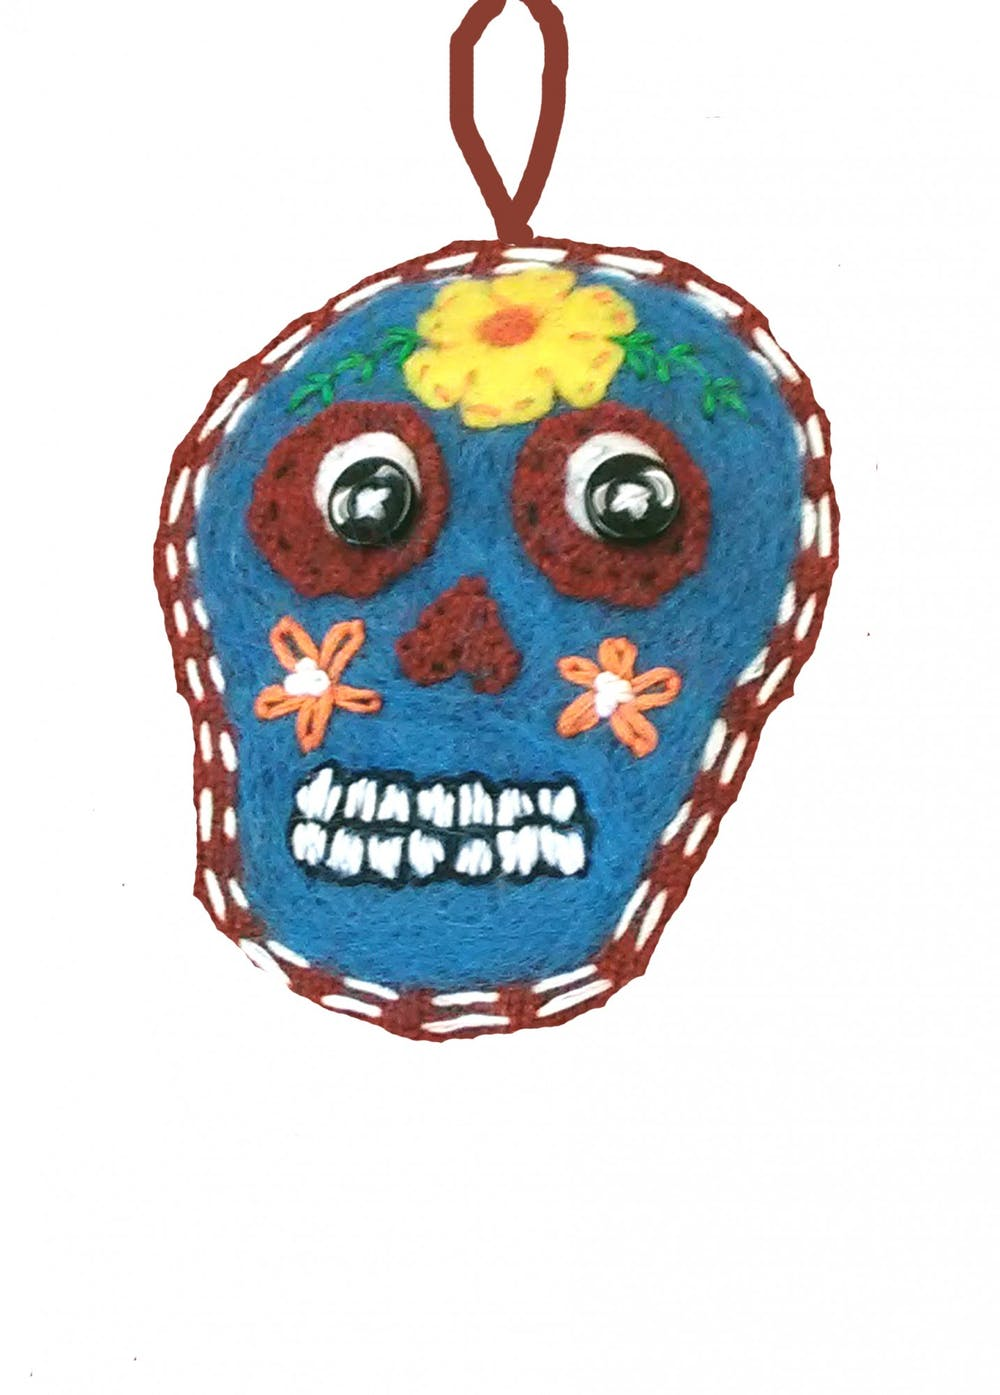 Felted sugar skulls workshop to celebrate Day of the Dead